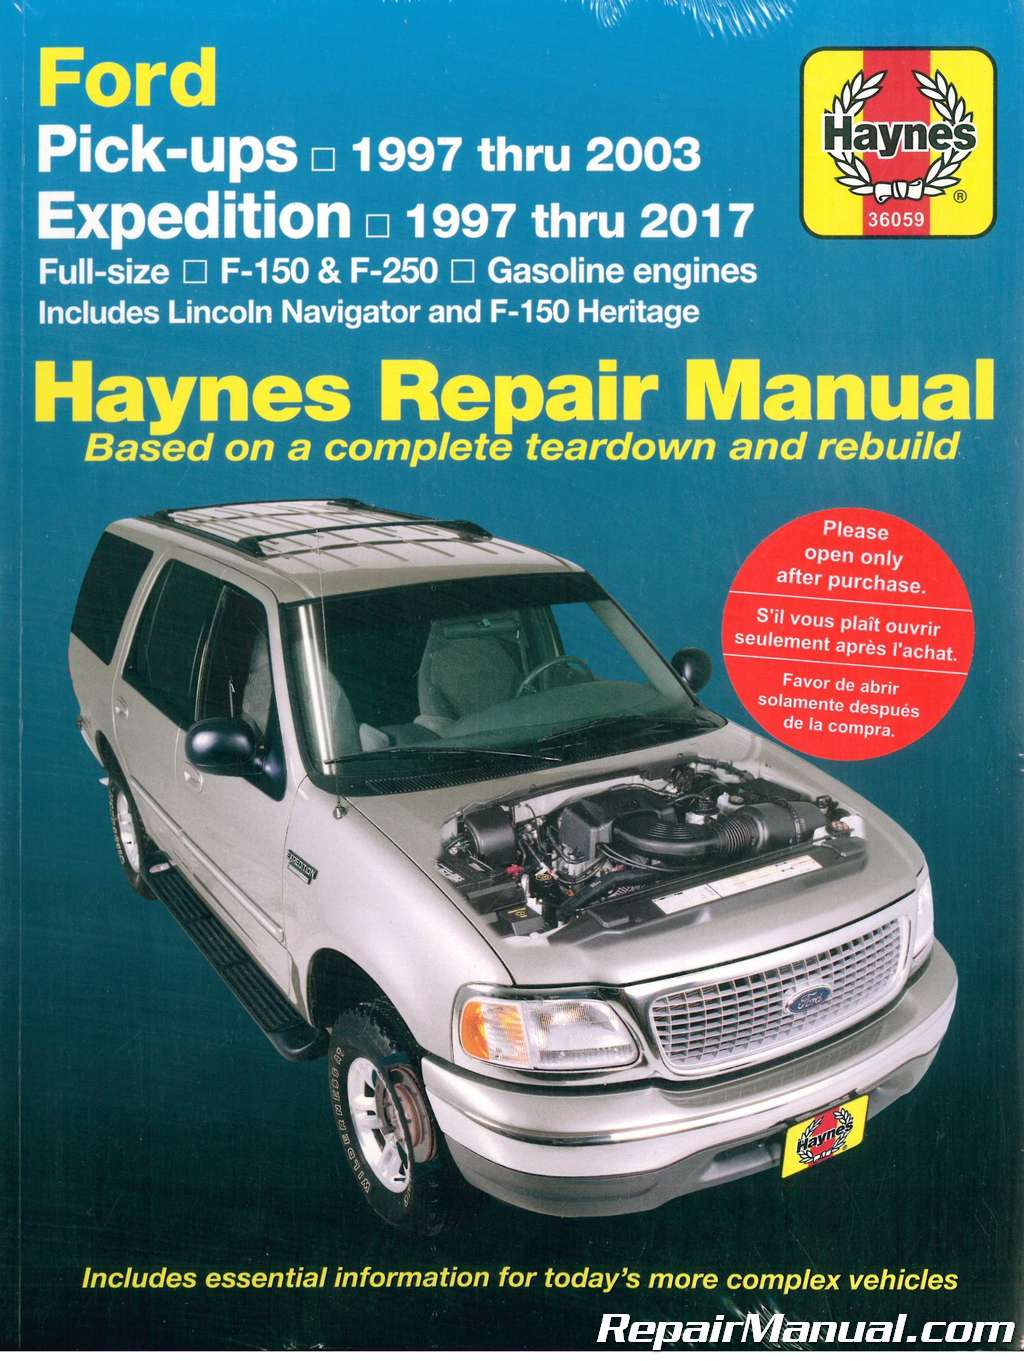 Haynes-Ford-Pickup-1997-2003-Expedition-1997-2017- ...